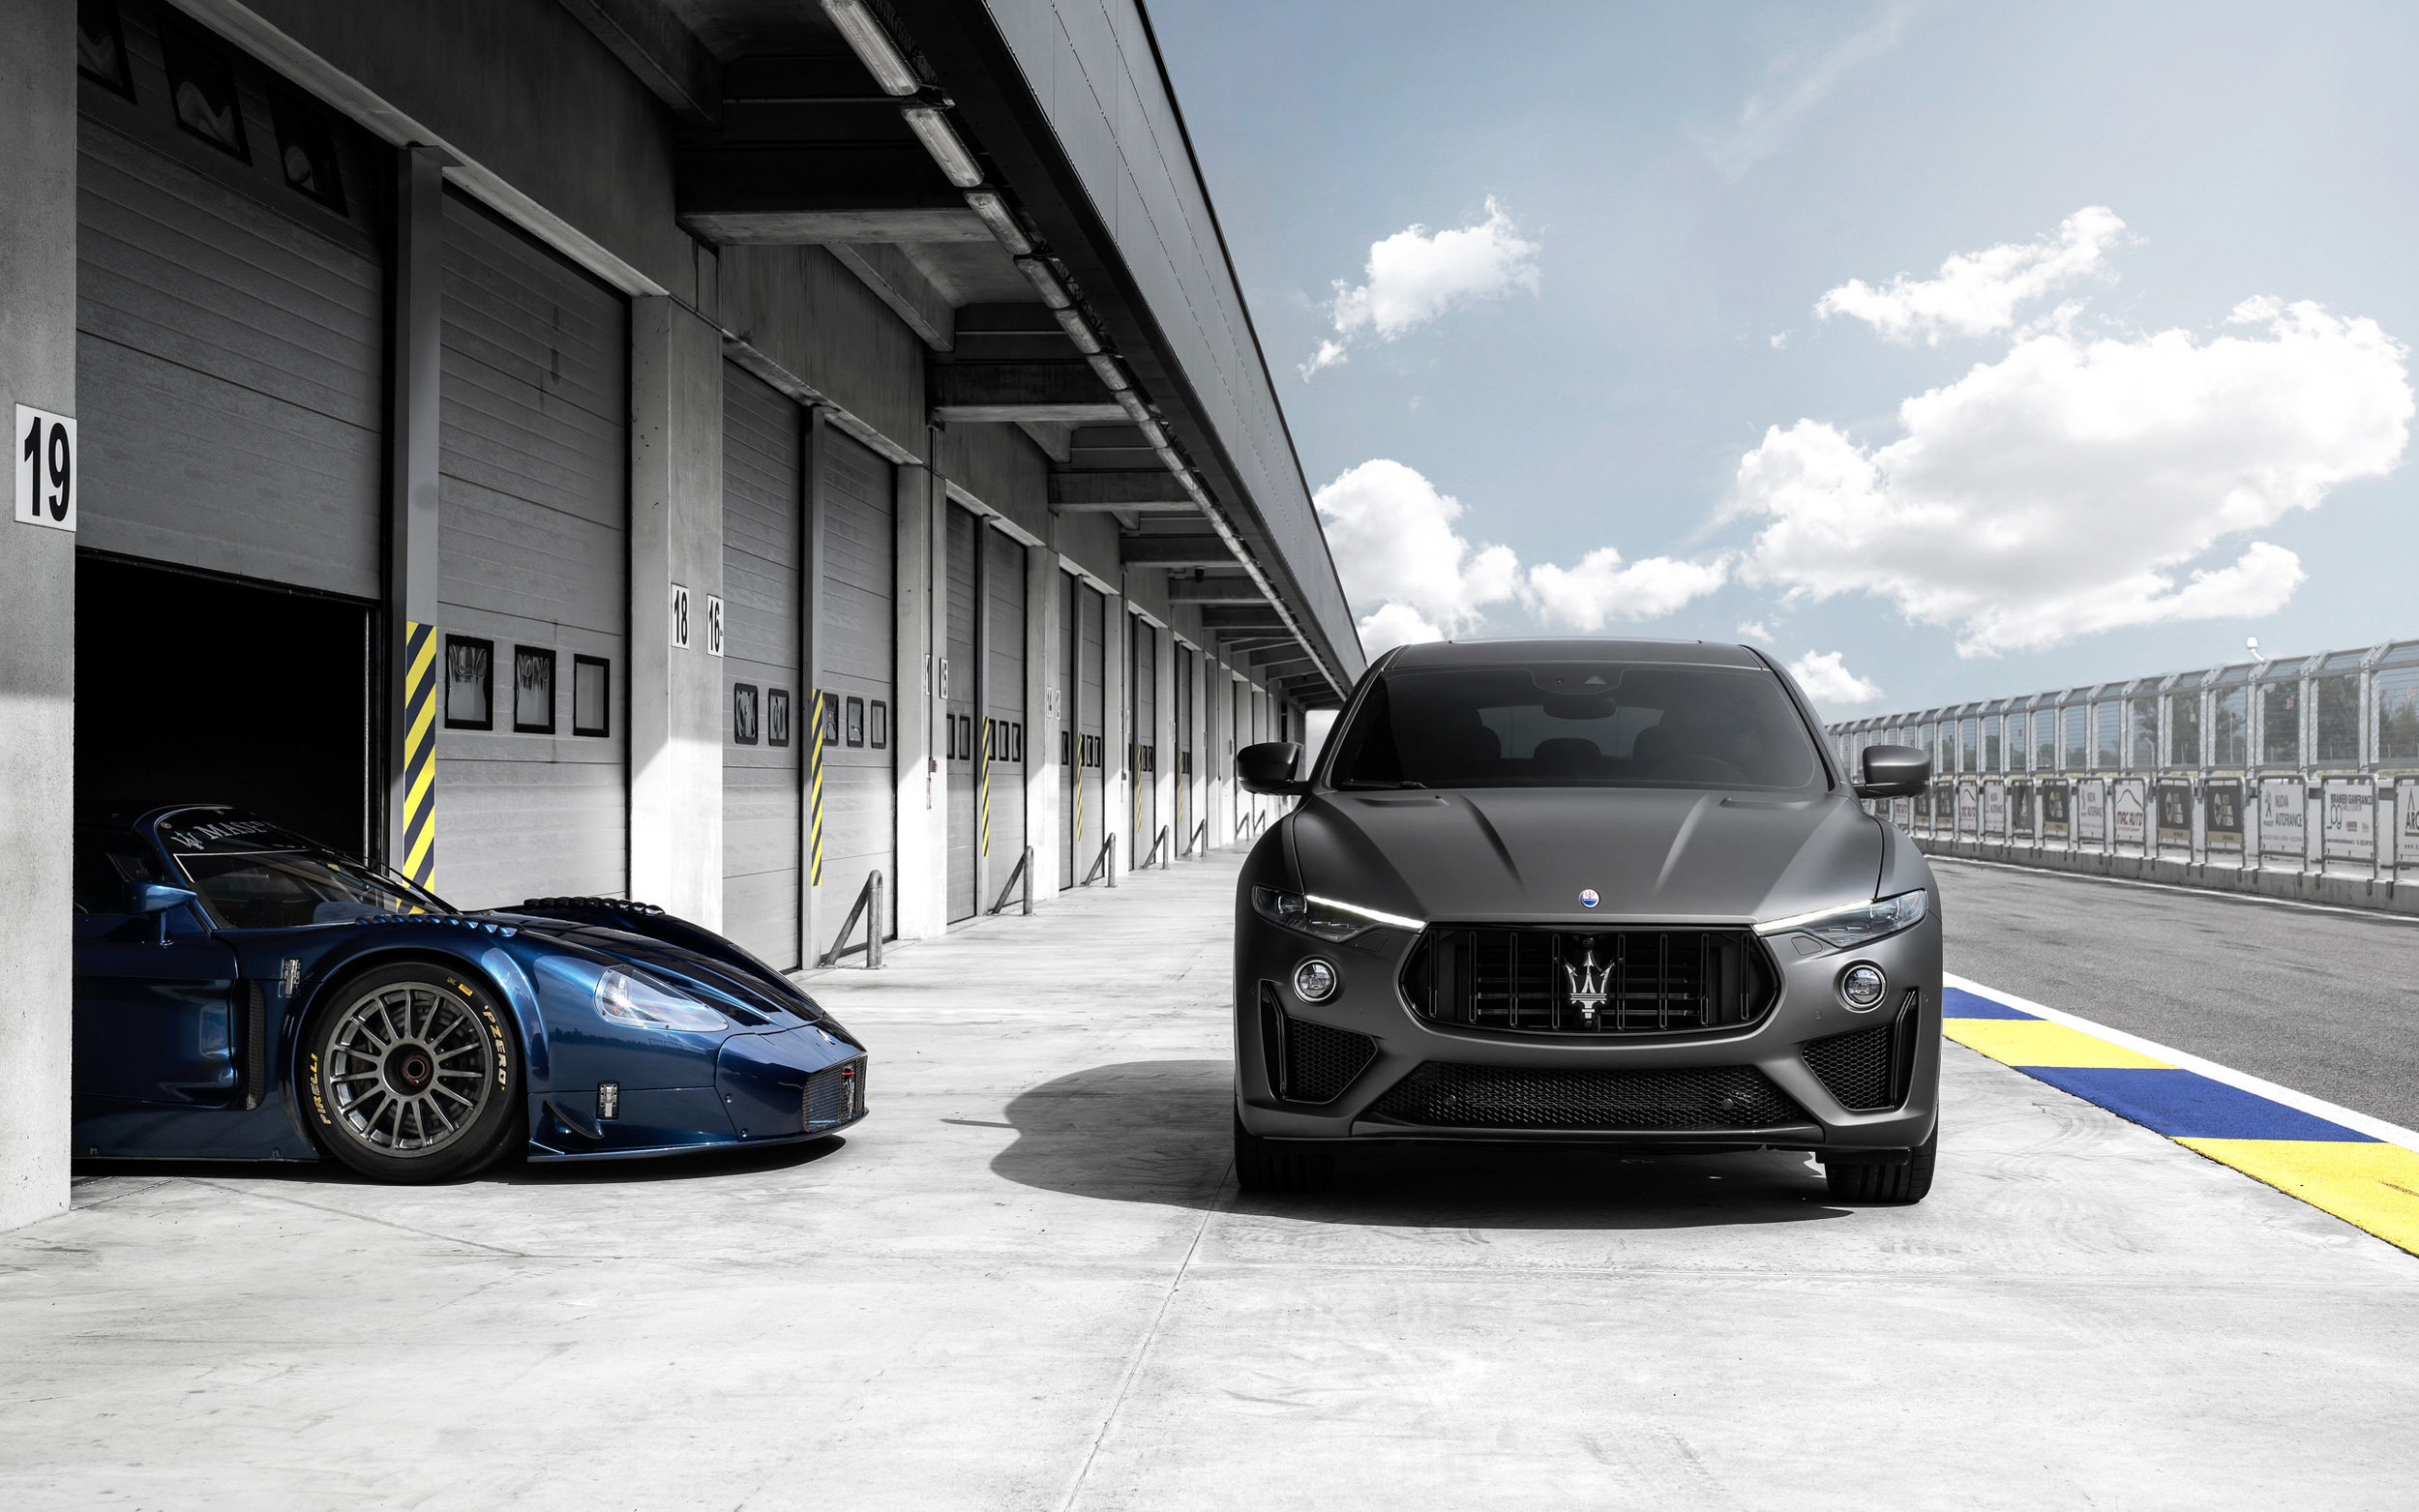 Maserati levante trofeo 2018 latest hd cars 4k wallpapers images backgrounds photos and - Maserati levante wallpaper ...